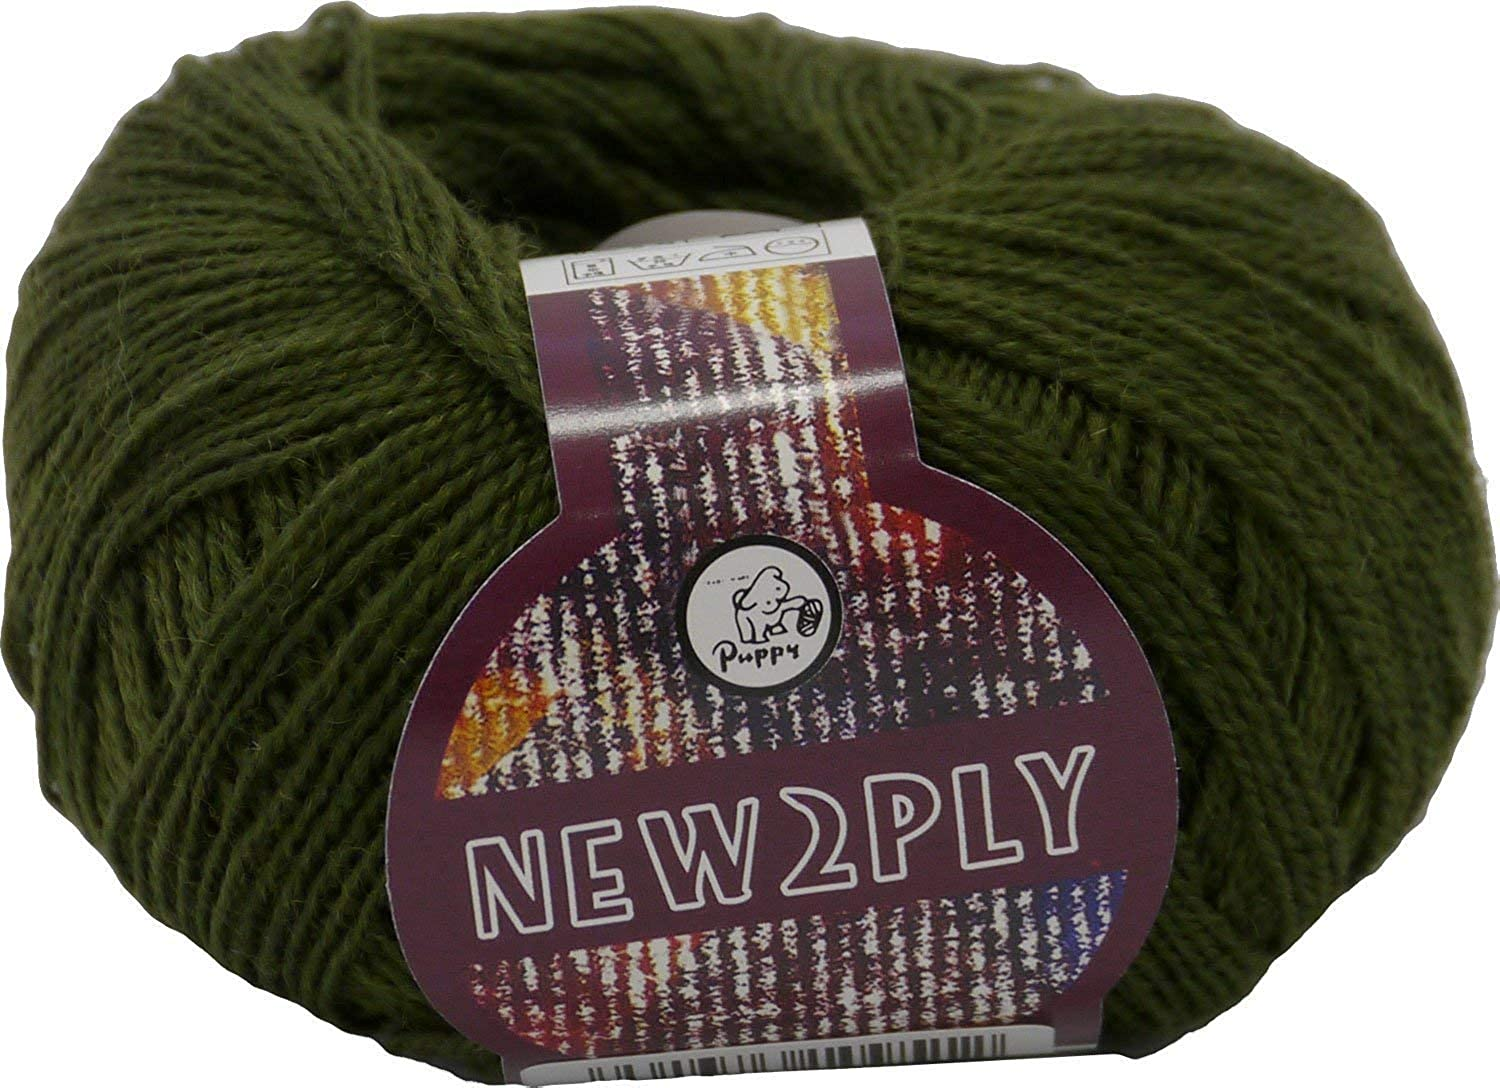 Hiromi House Japan New 2 PLY wool thread col. 251 green 25 g 215 m 10 ball set